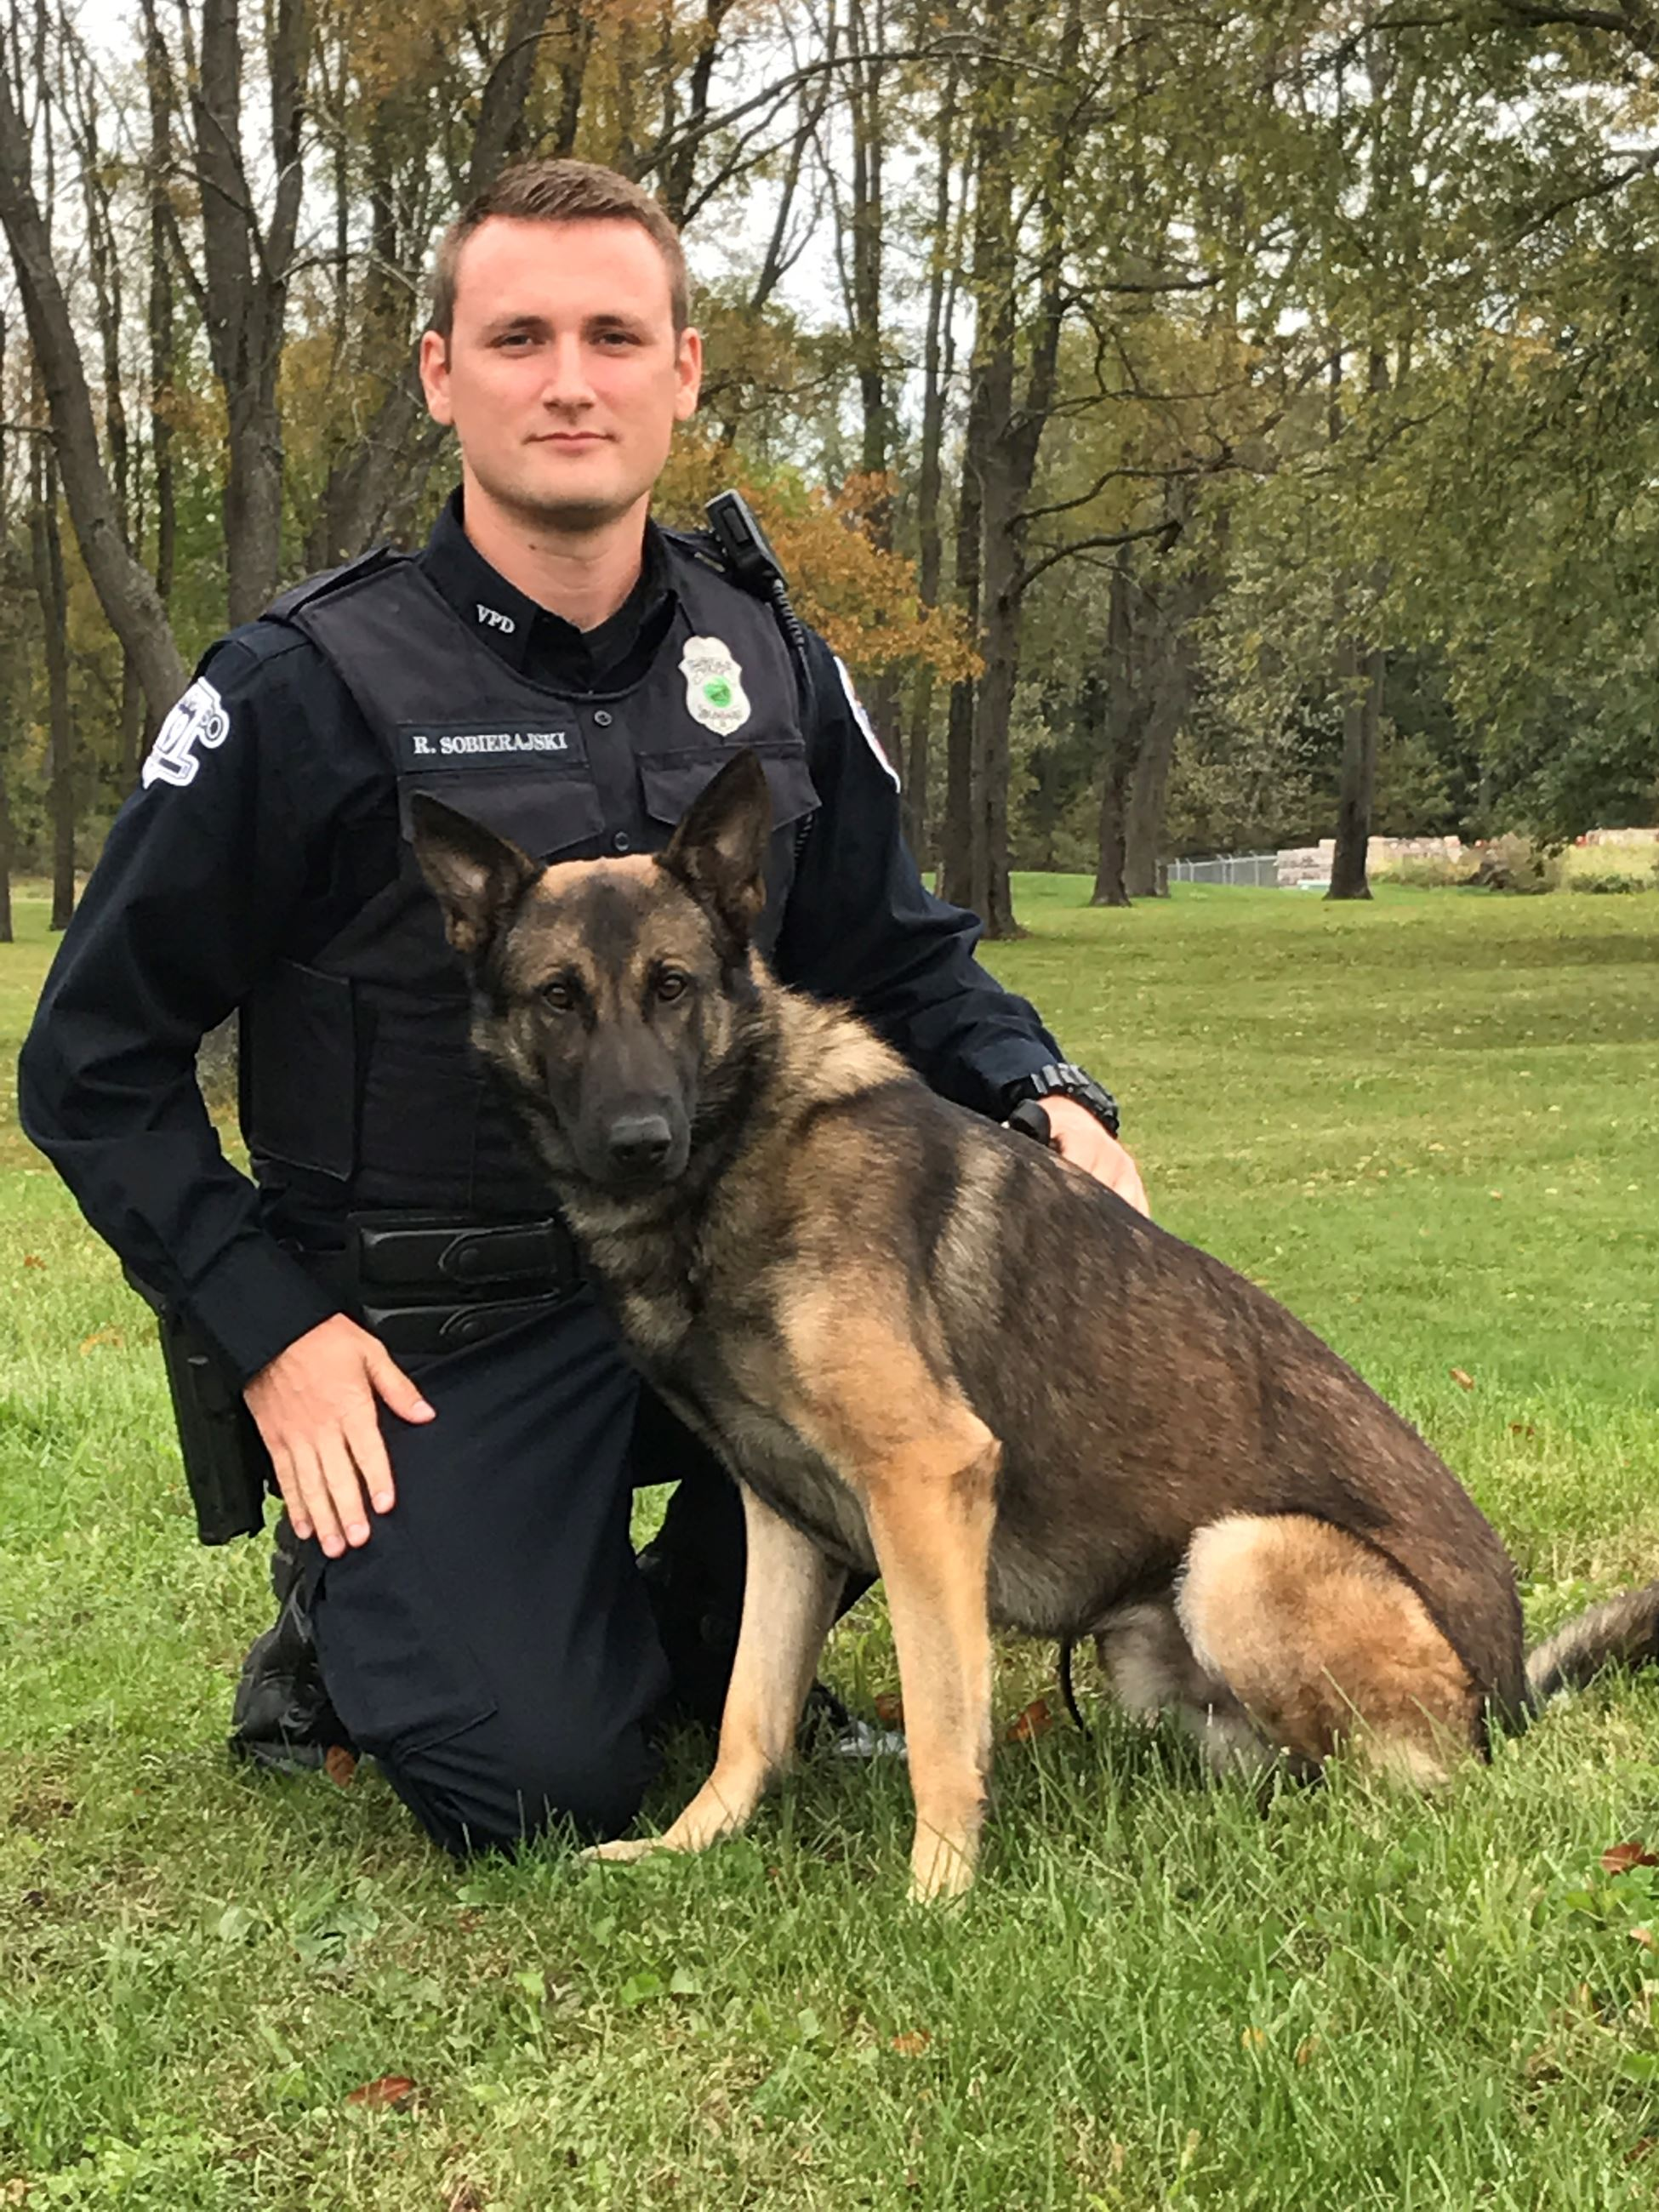 Officer Sobierajski and Vega